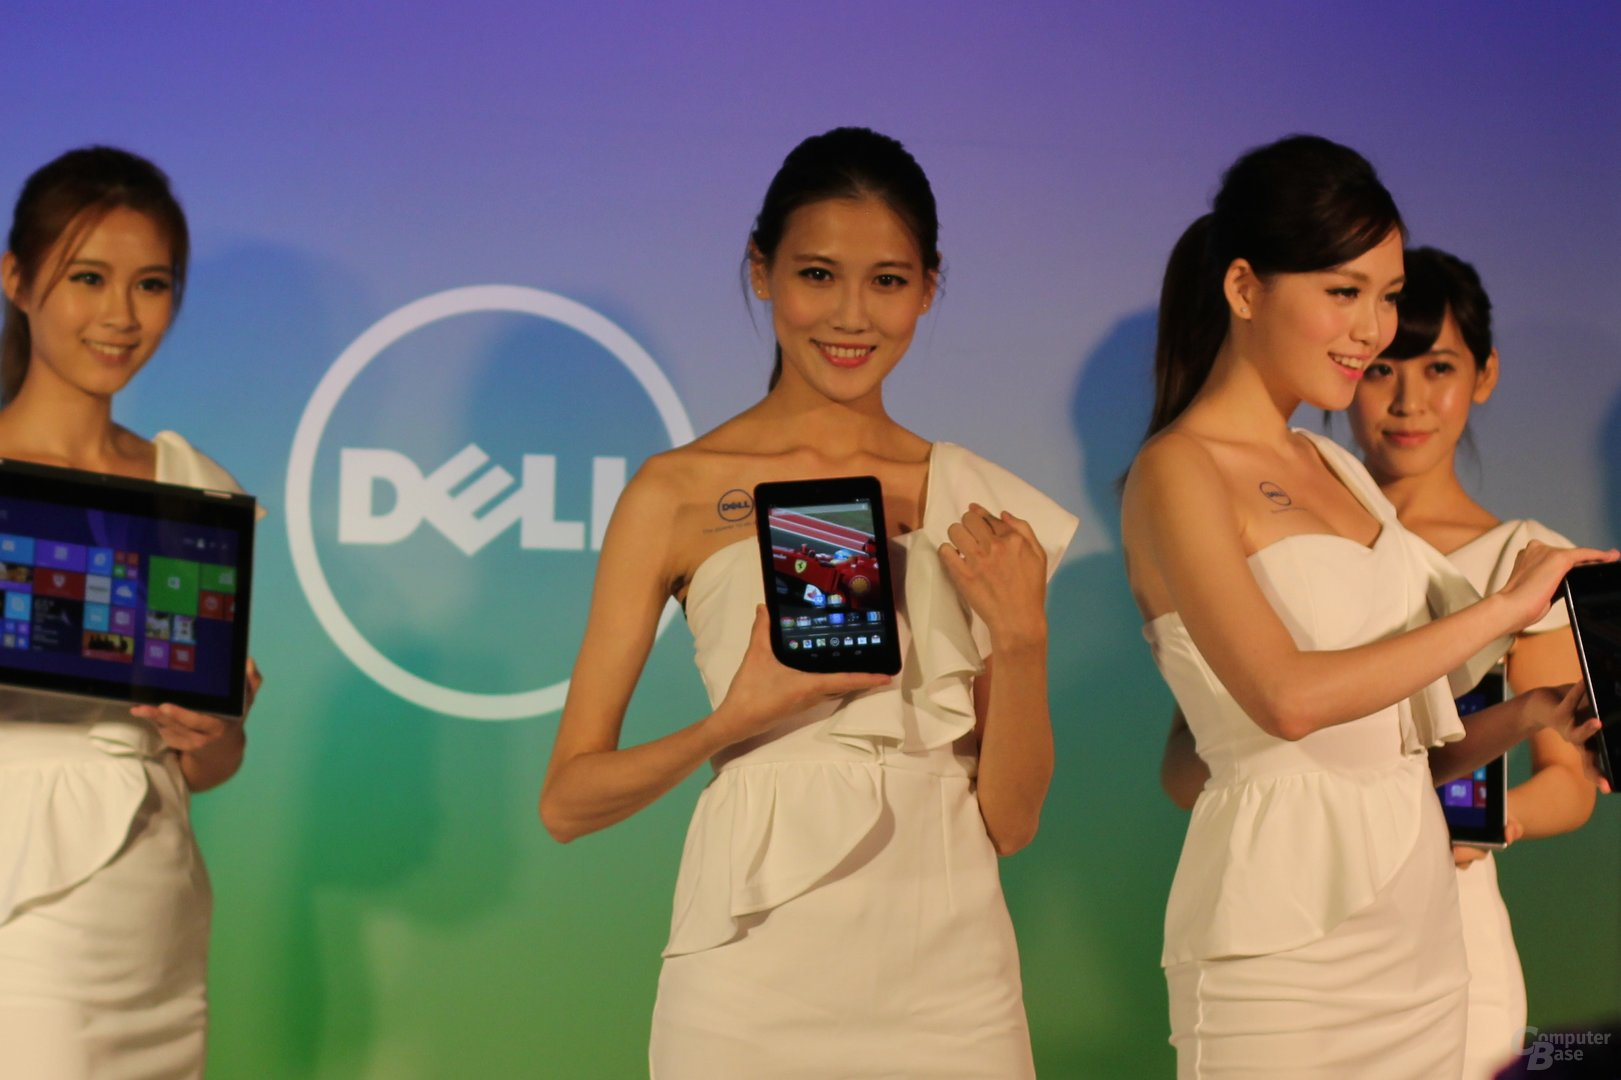 Das neue Dell Venue 8 mit Full-HD-Display